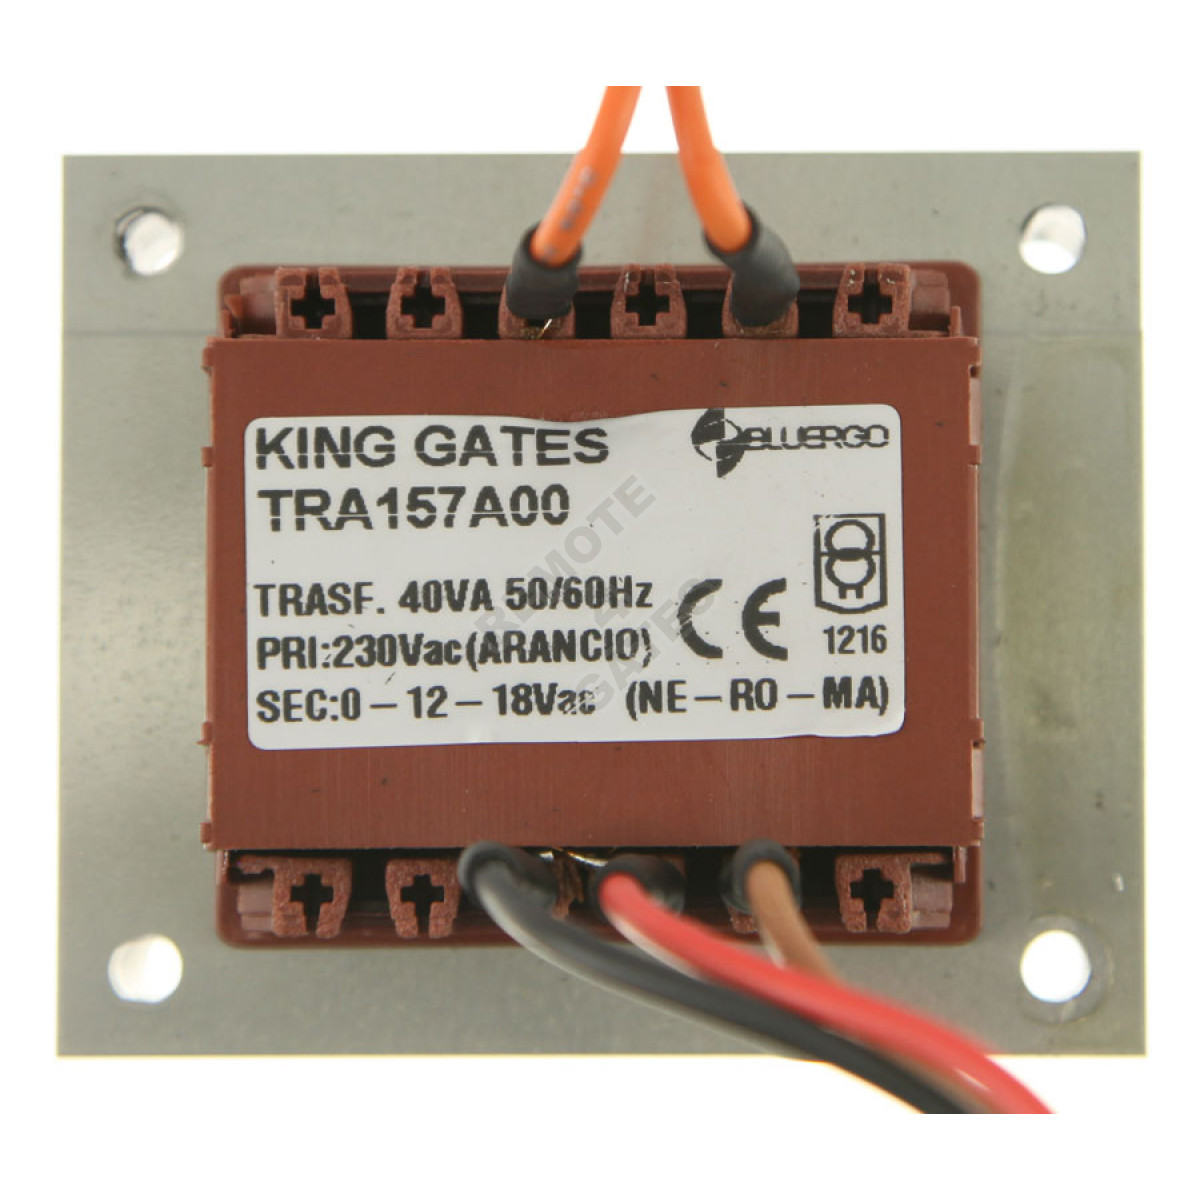 KING-GATES STARG8 AC Transformer